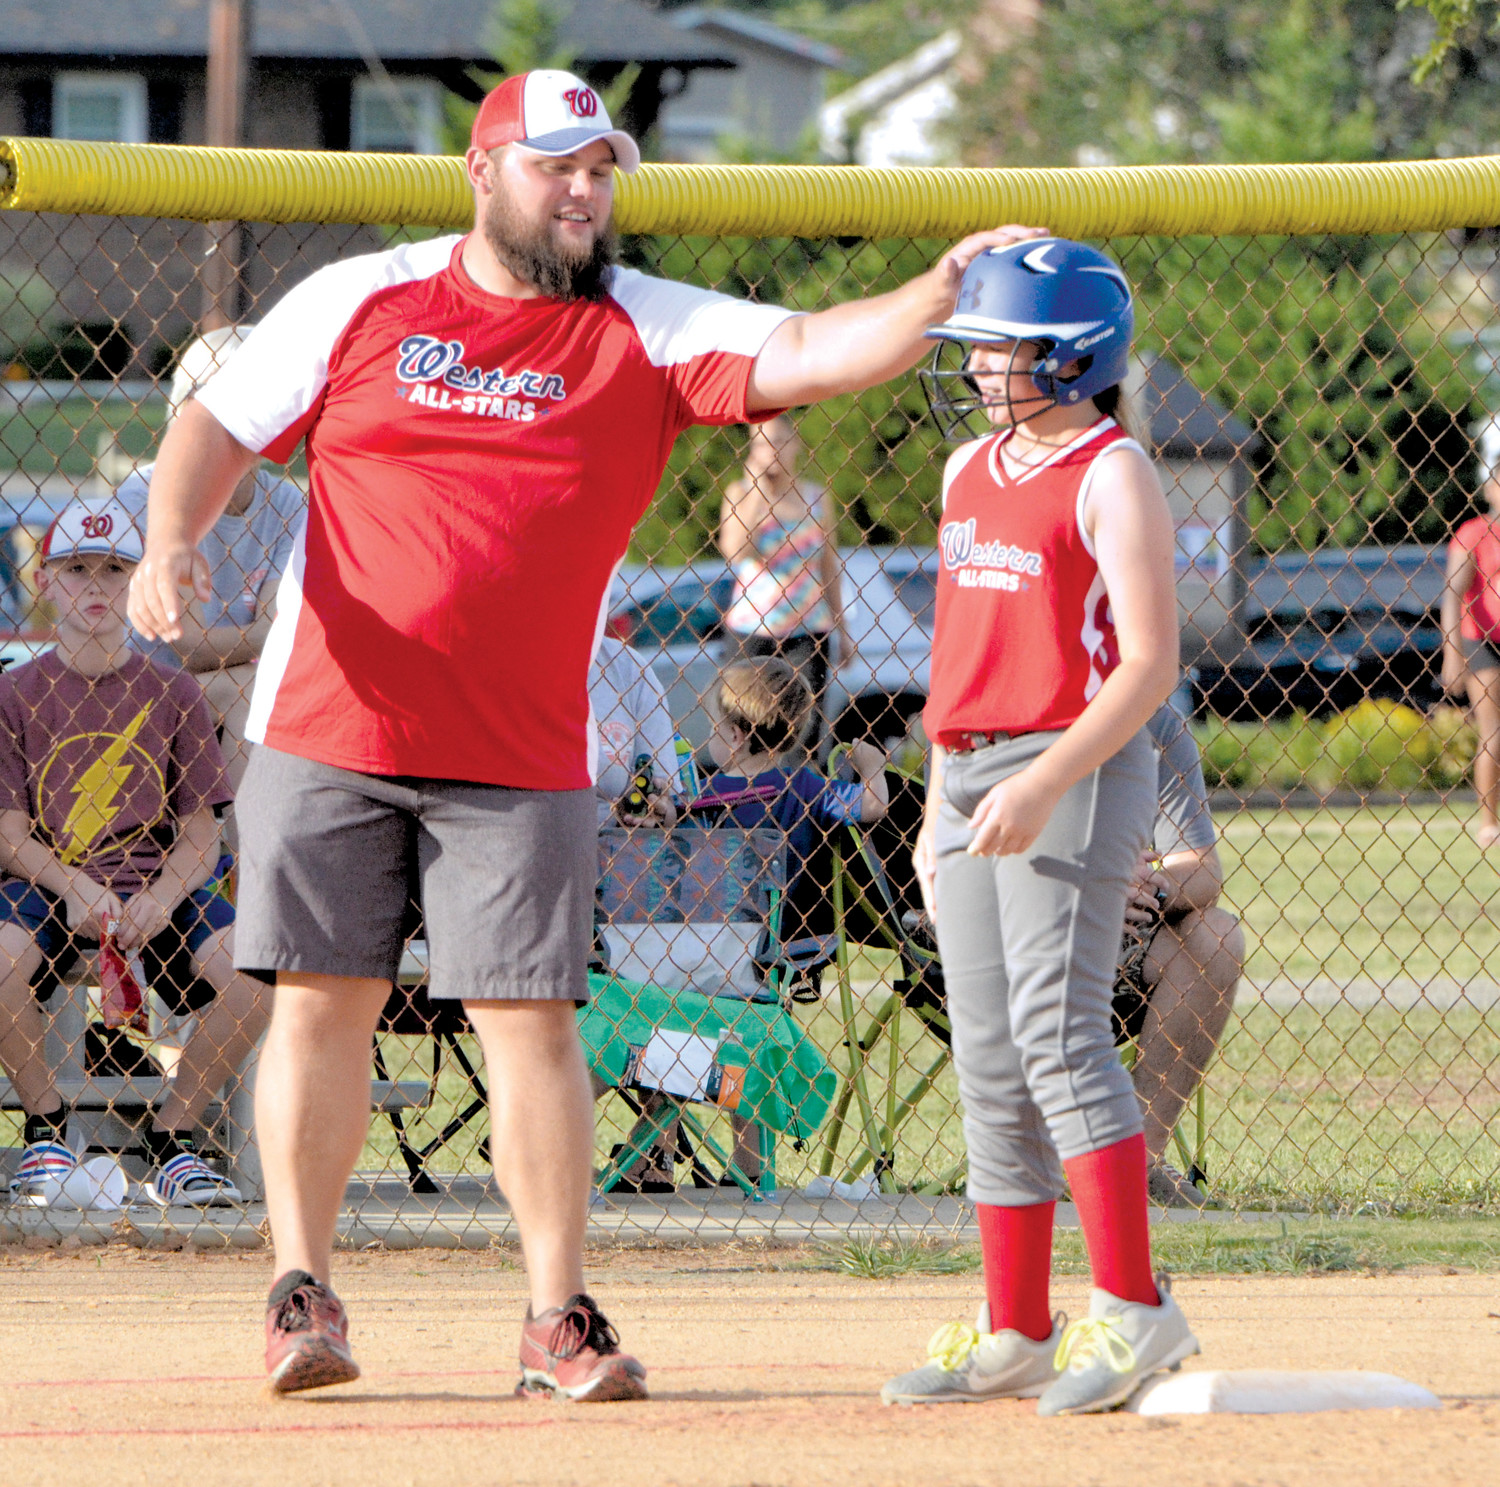 The Western Harnett 12U Tar Heel Softball All-Stars lost in the opening game of their District IV Tournament, 6-3, to Erwin on Monday evening. Here, the third base coach congratualtes a base runner for sucessfully stealing second and and third base in the first inning.